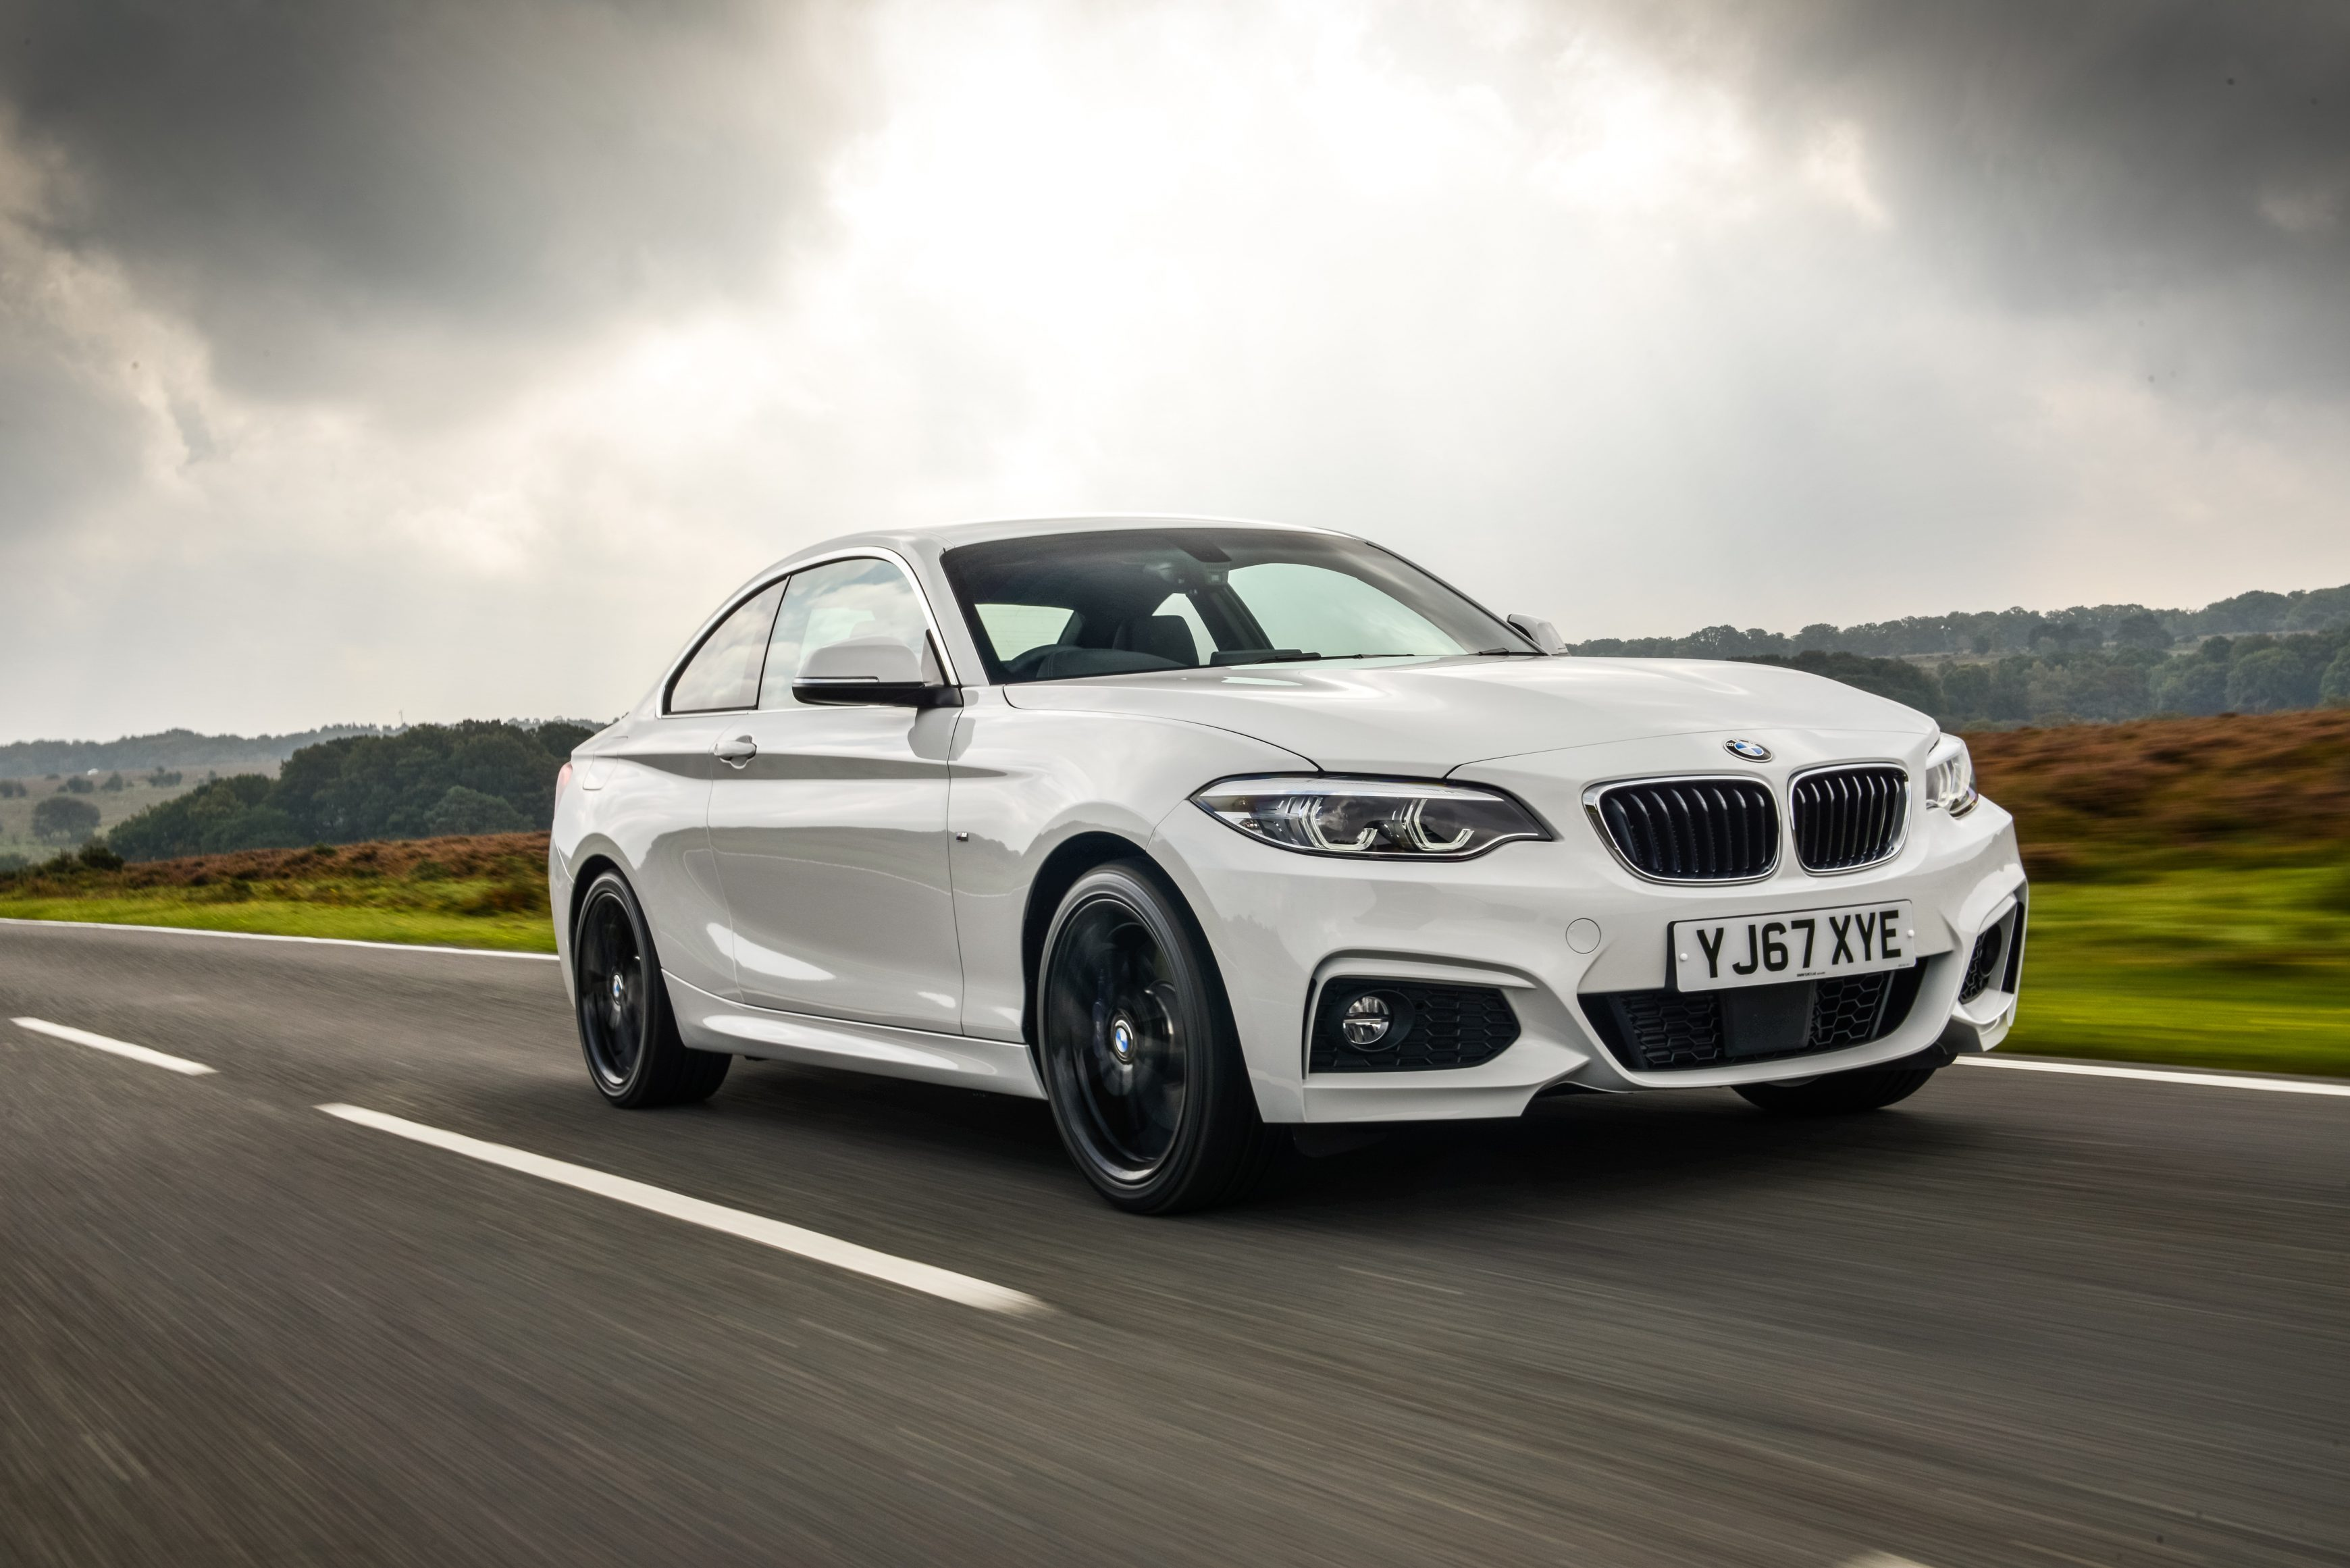 BMW 2 Series out on the road